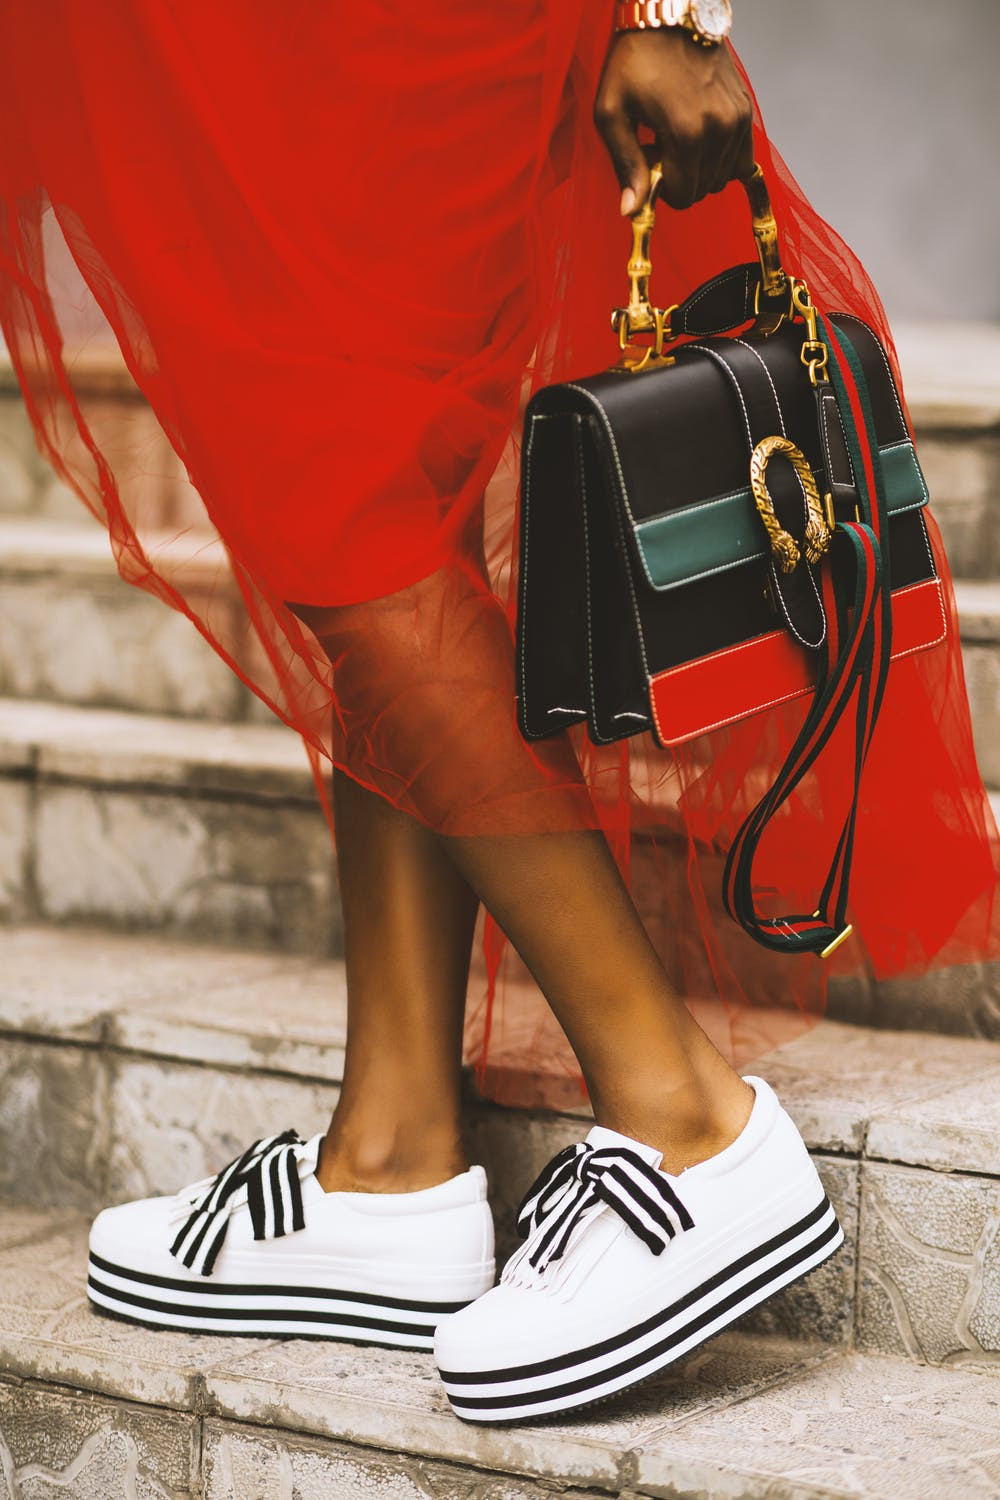 street style image of sports fashion sneakers and leather handbag